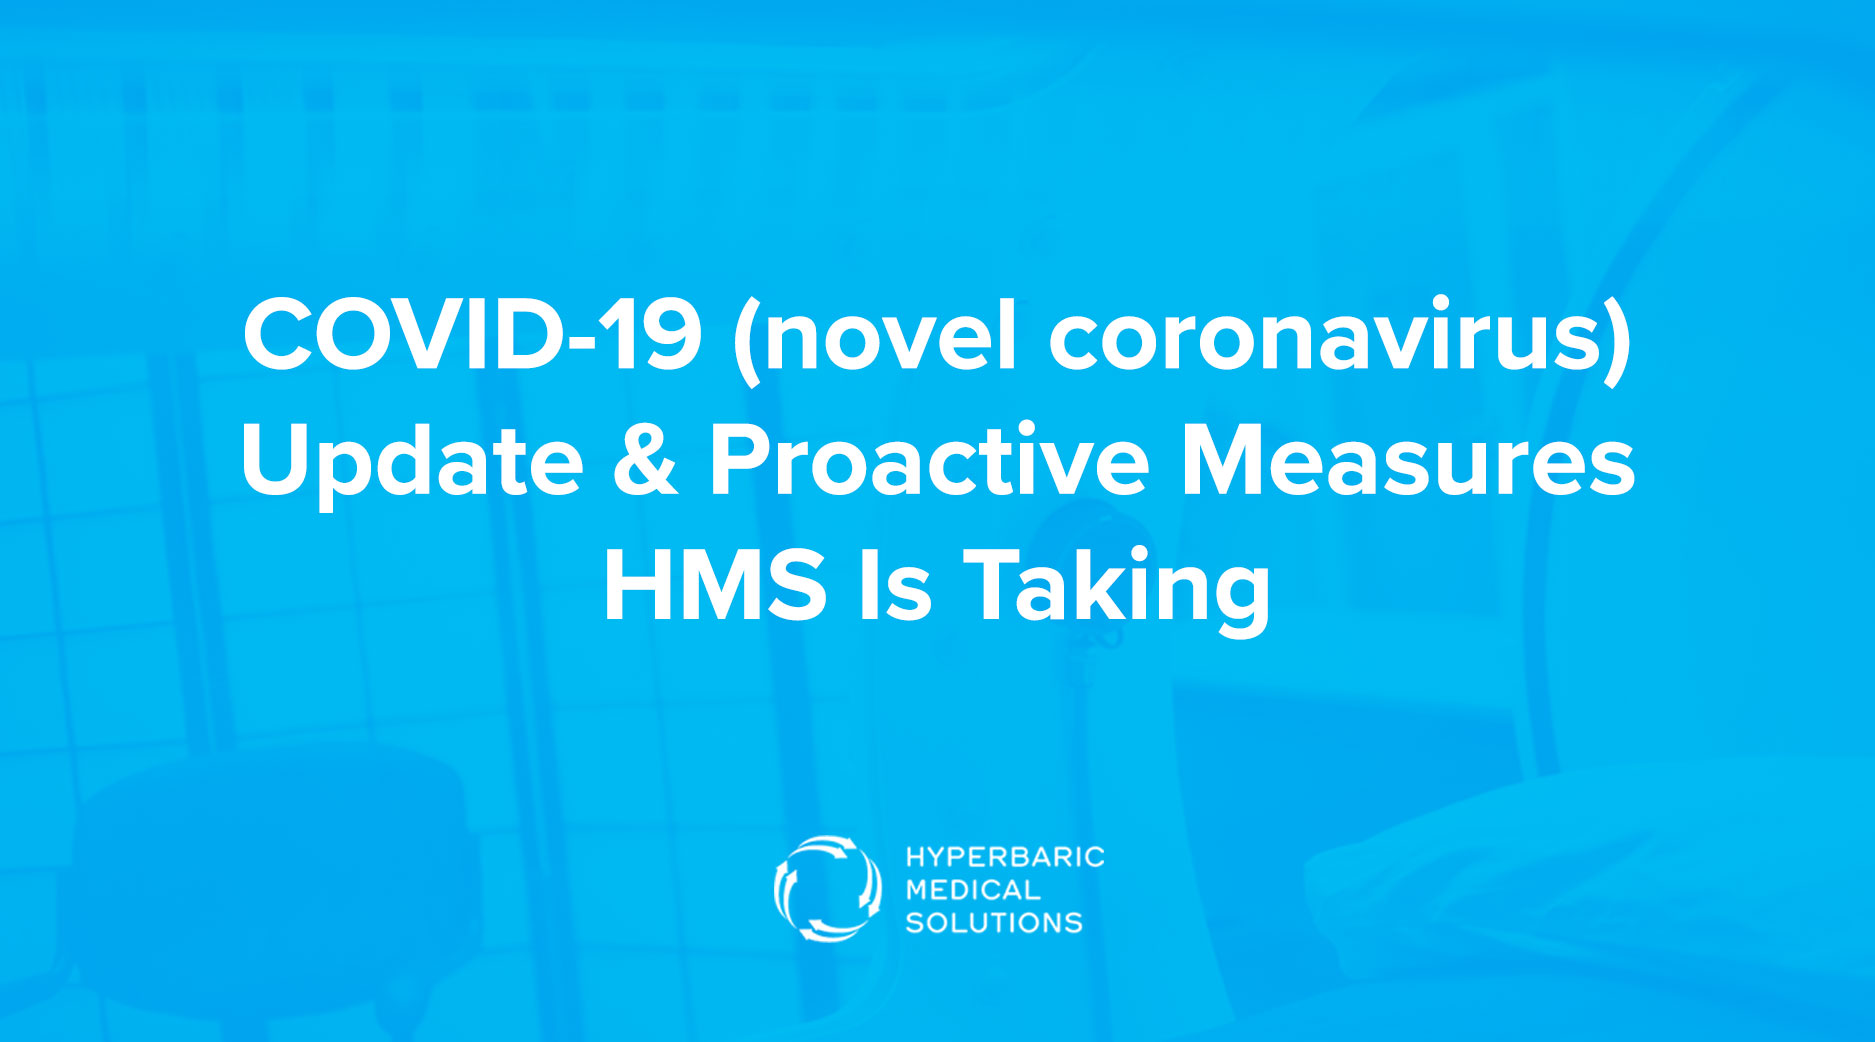 COVID-19 (novel coronavirus) Update & Proactive Measures HMS Is Taking